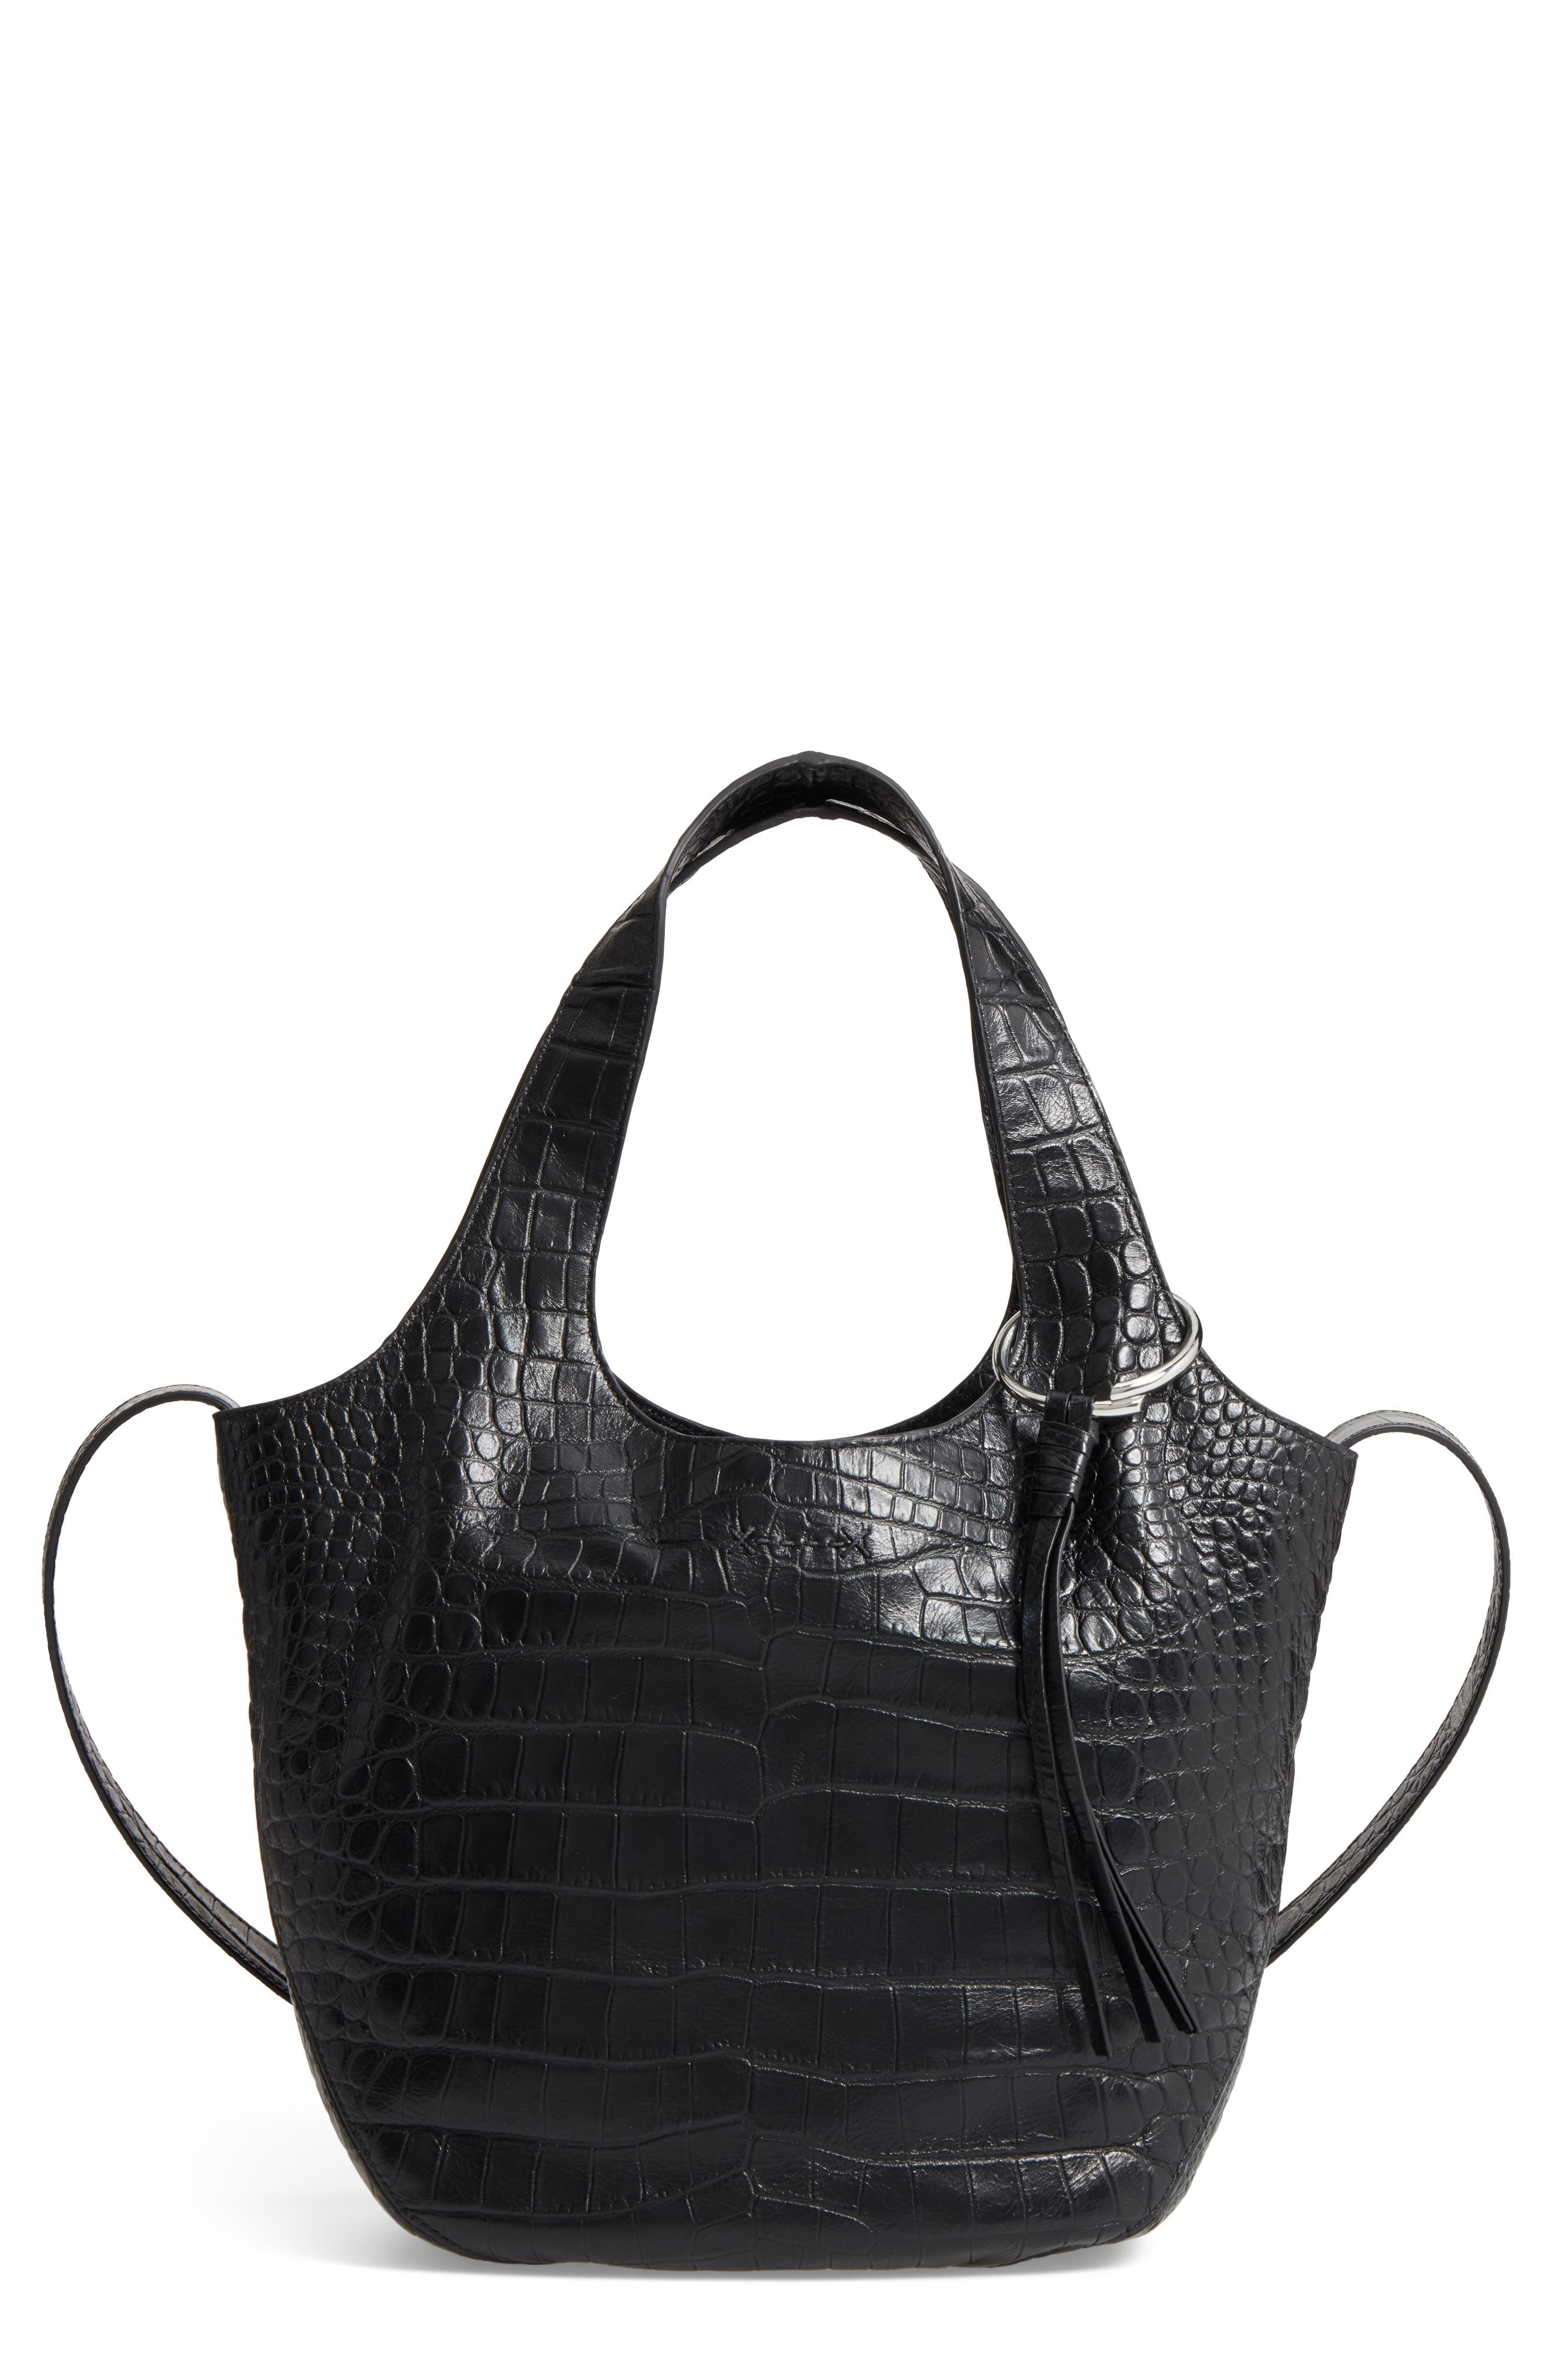 Main Image - Elizabeth and James Small Finley Embossed Leather Shopper